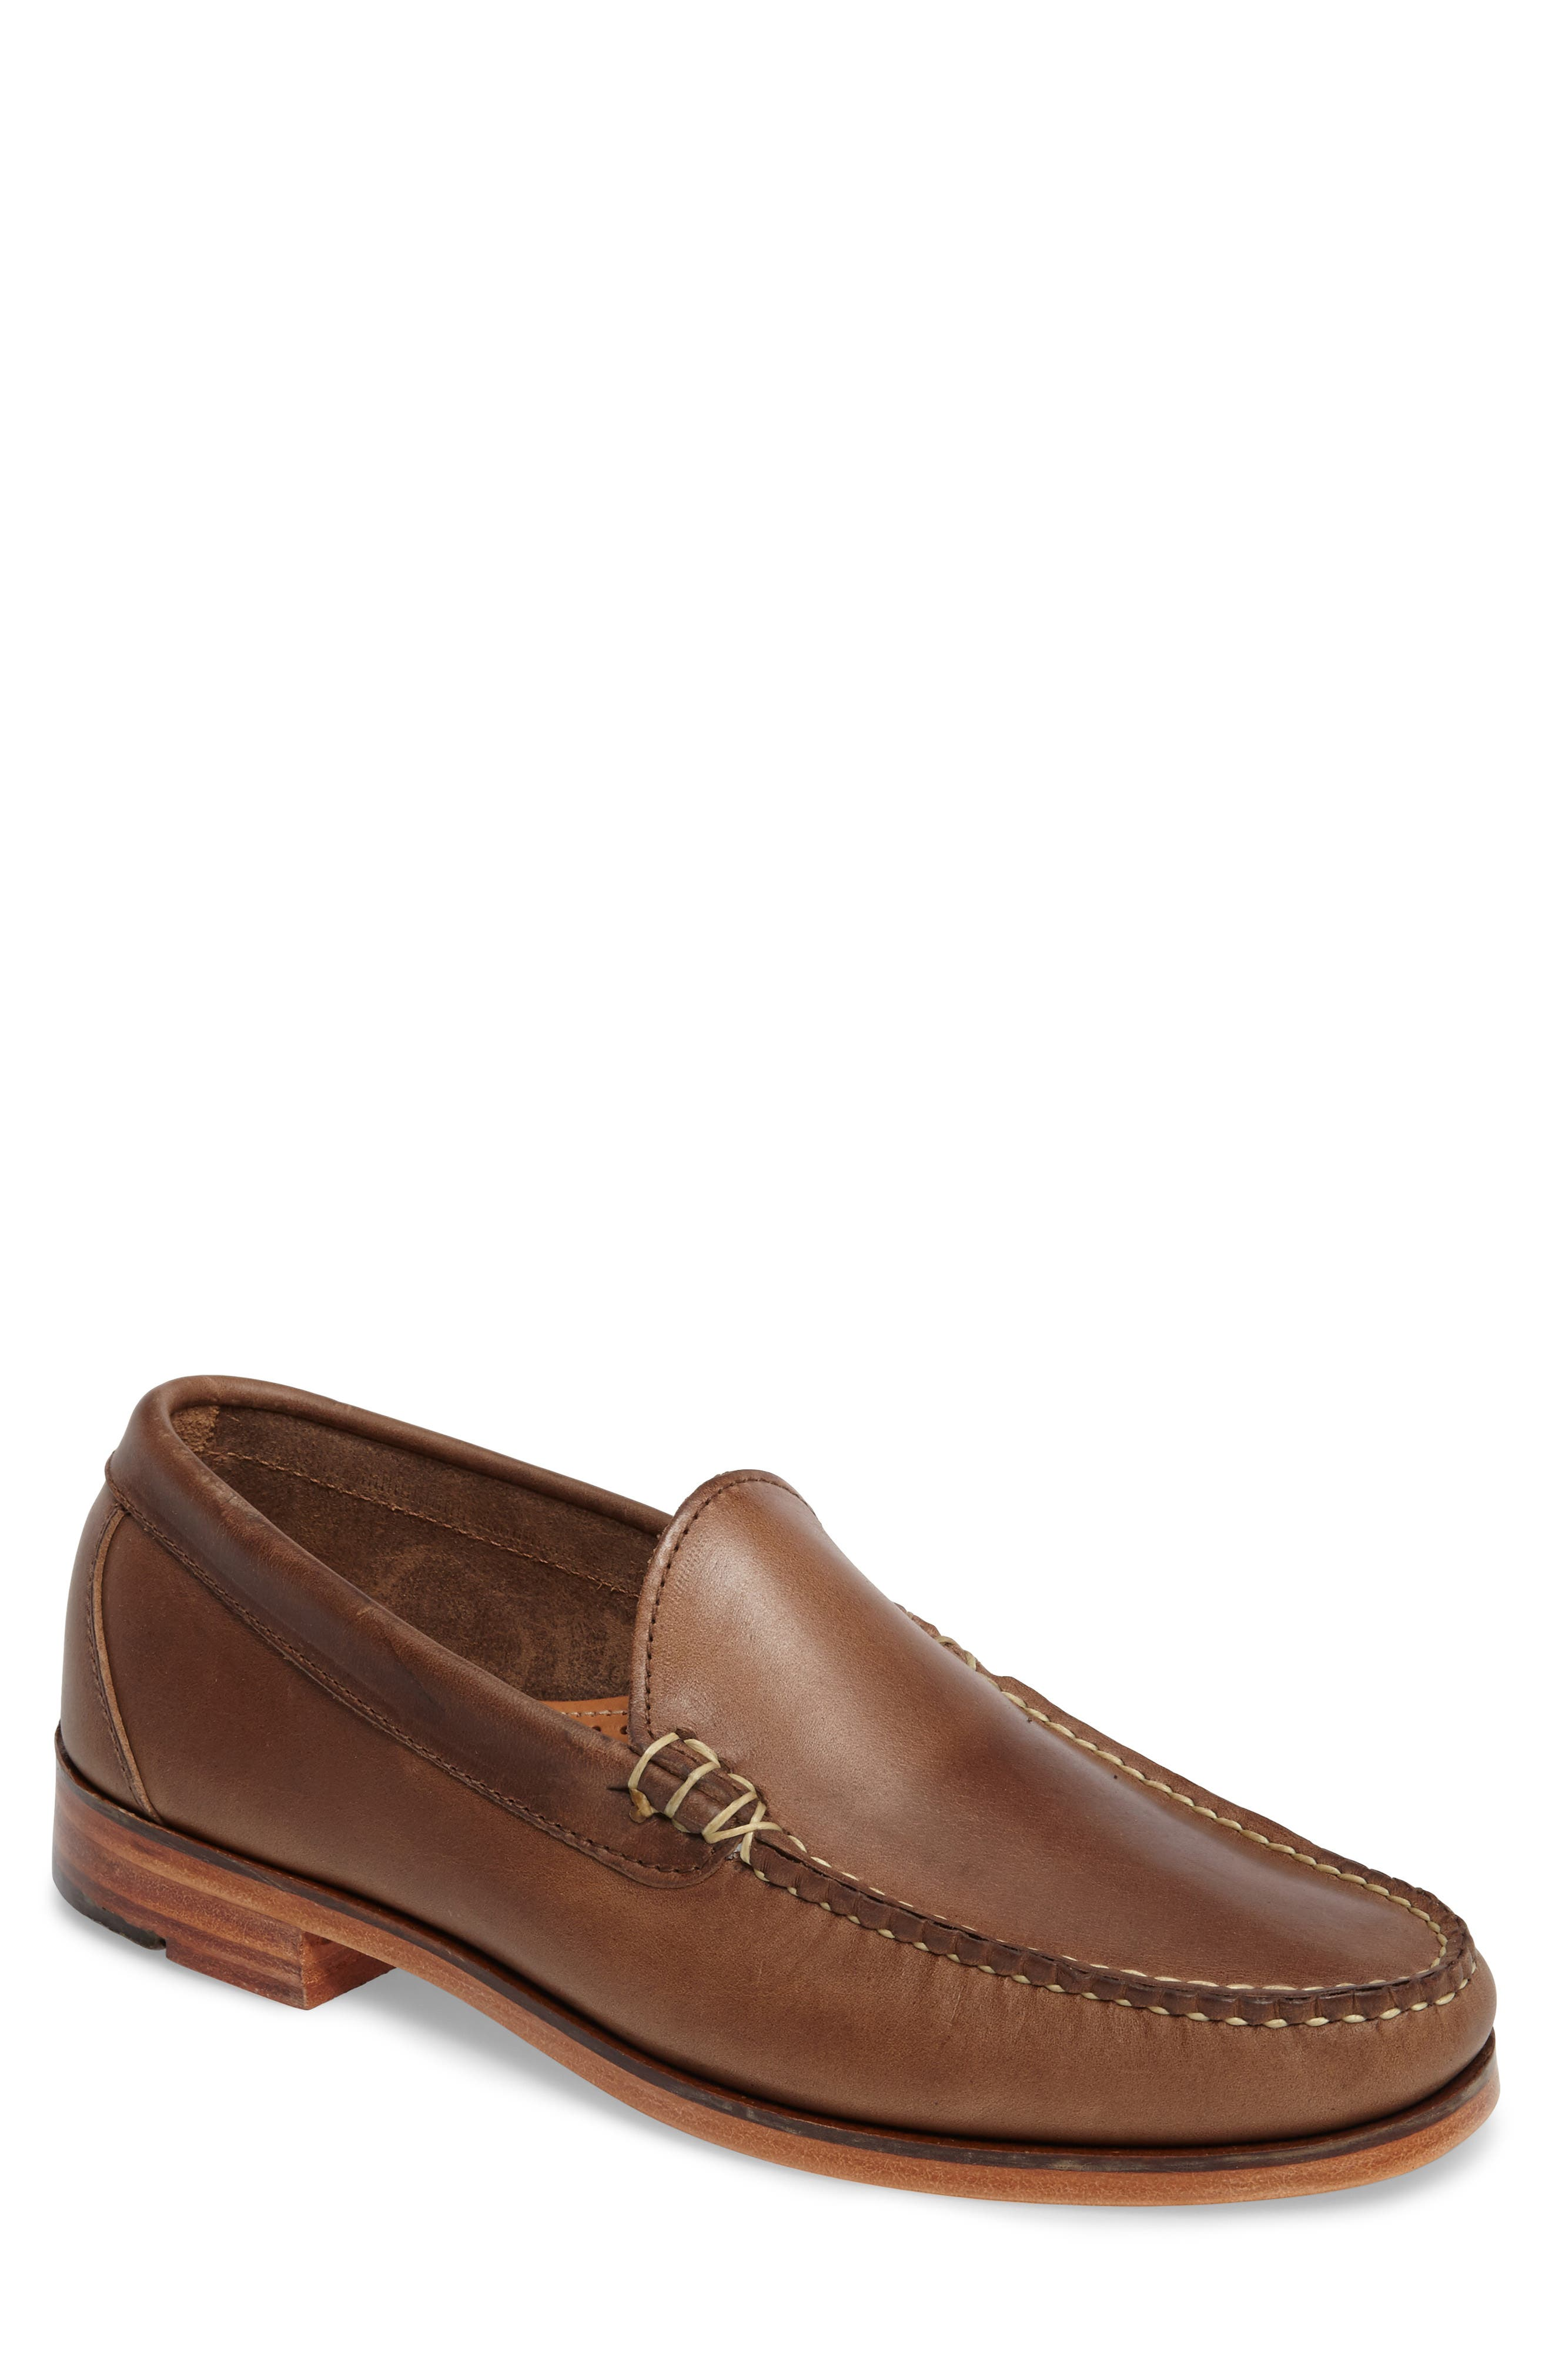 Natural Loafer,                         Main,                         color,